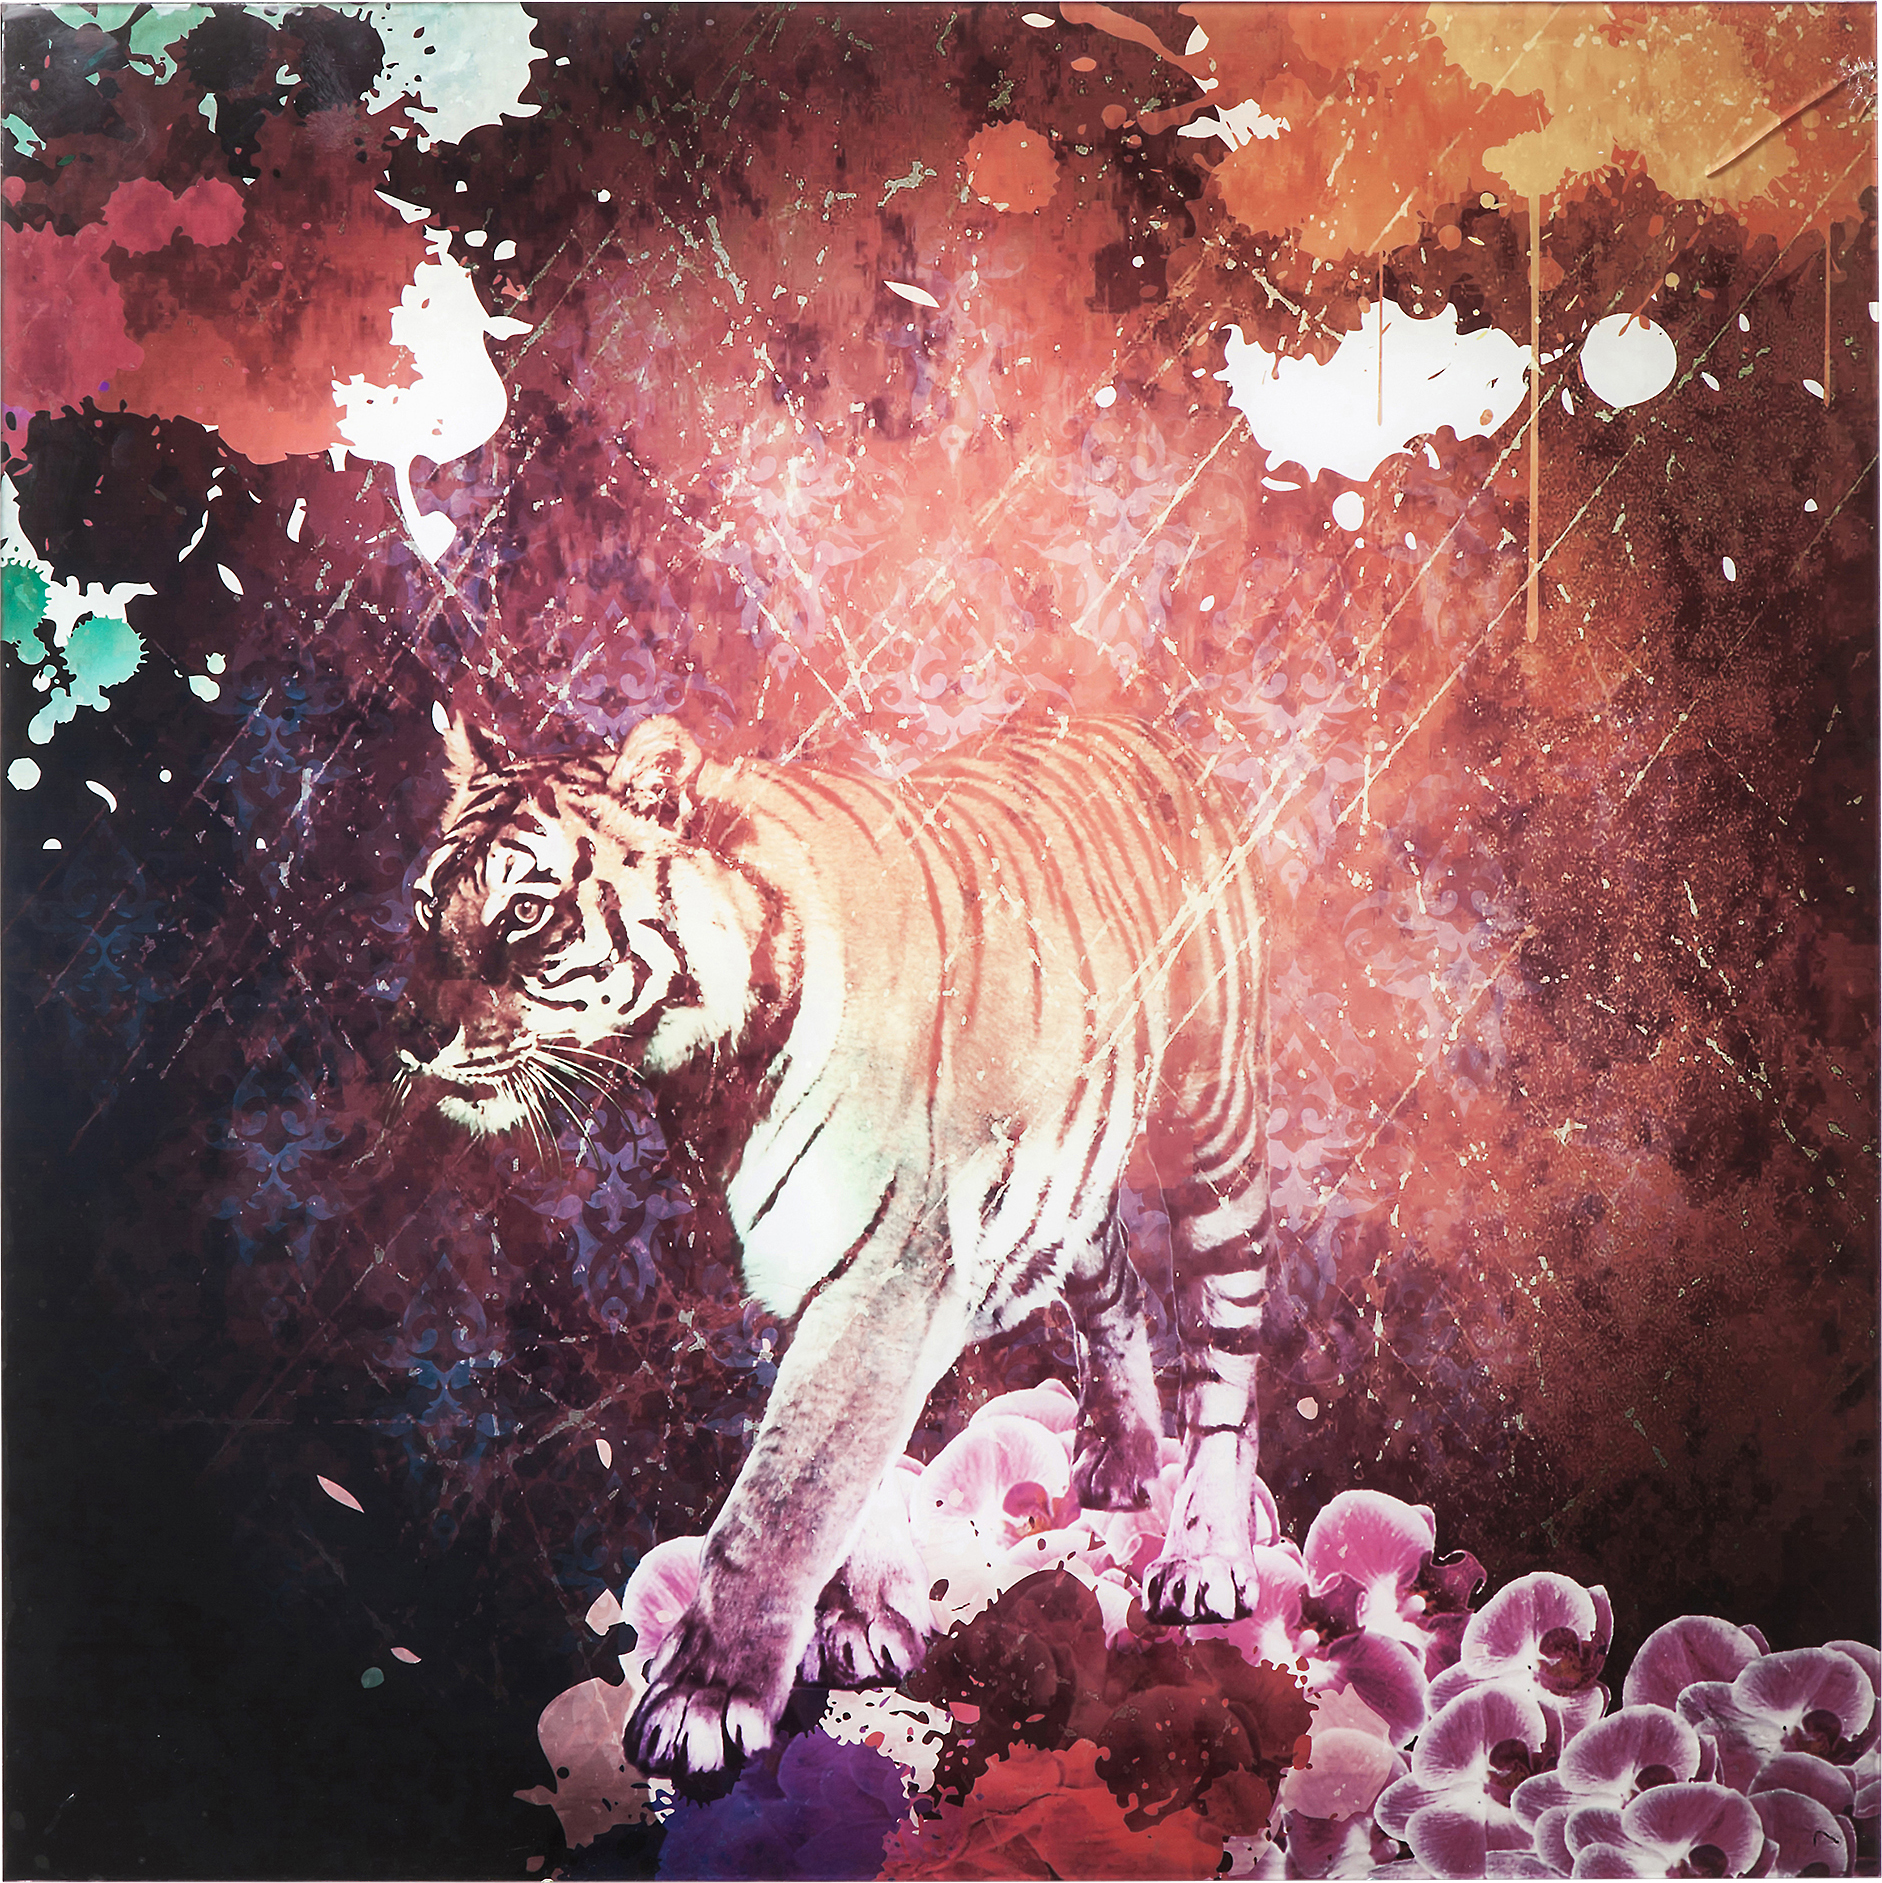 The Tiger by Mayk Azzato